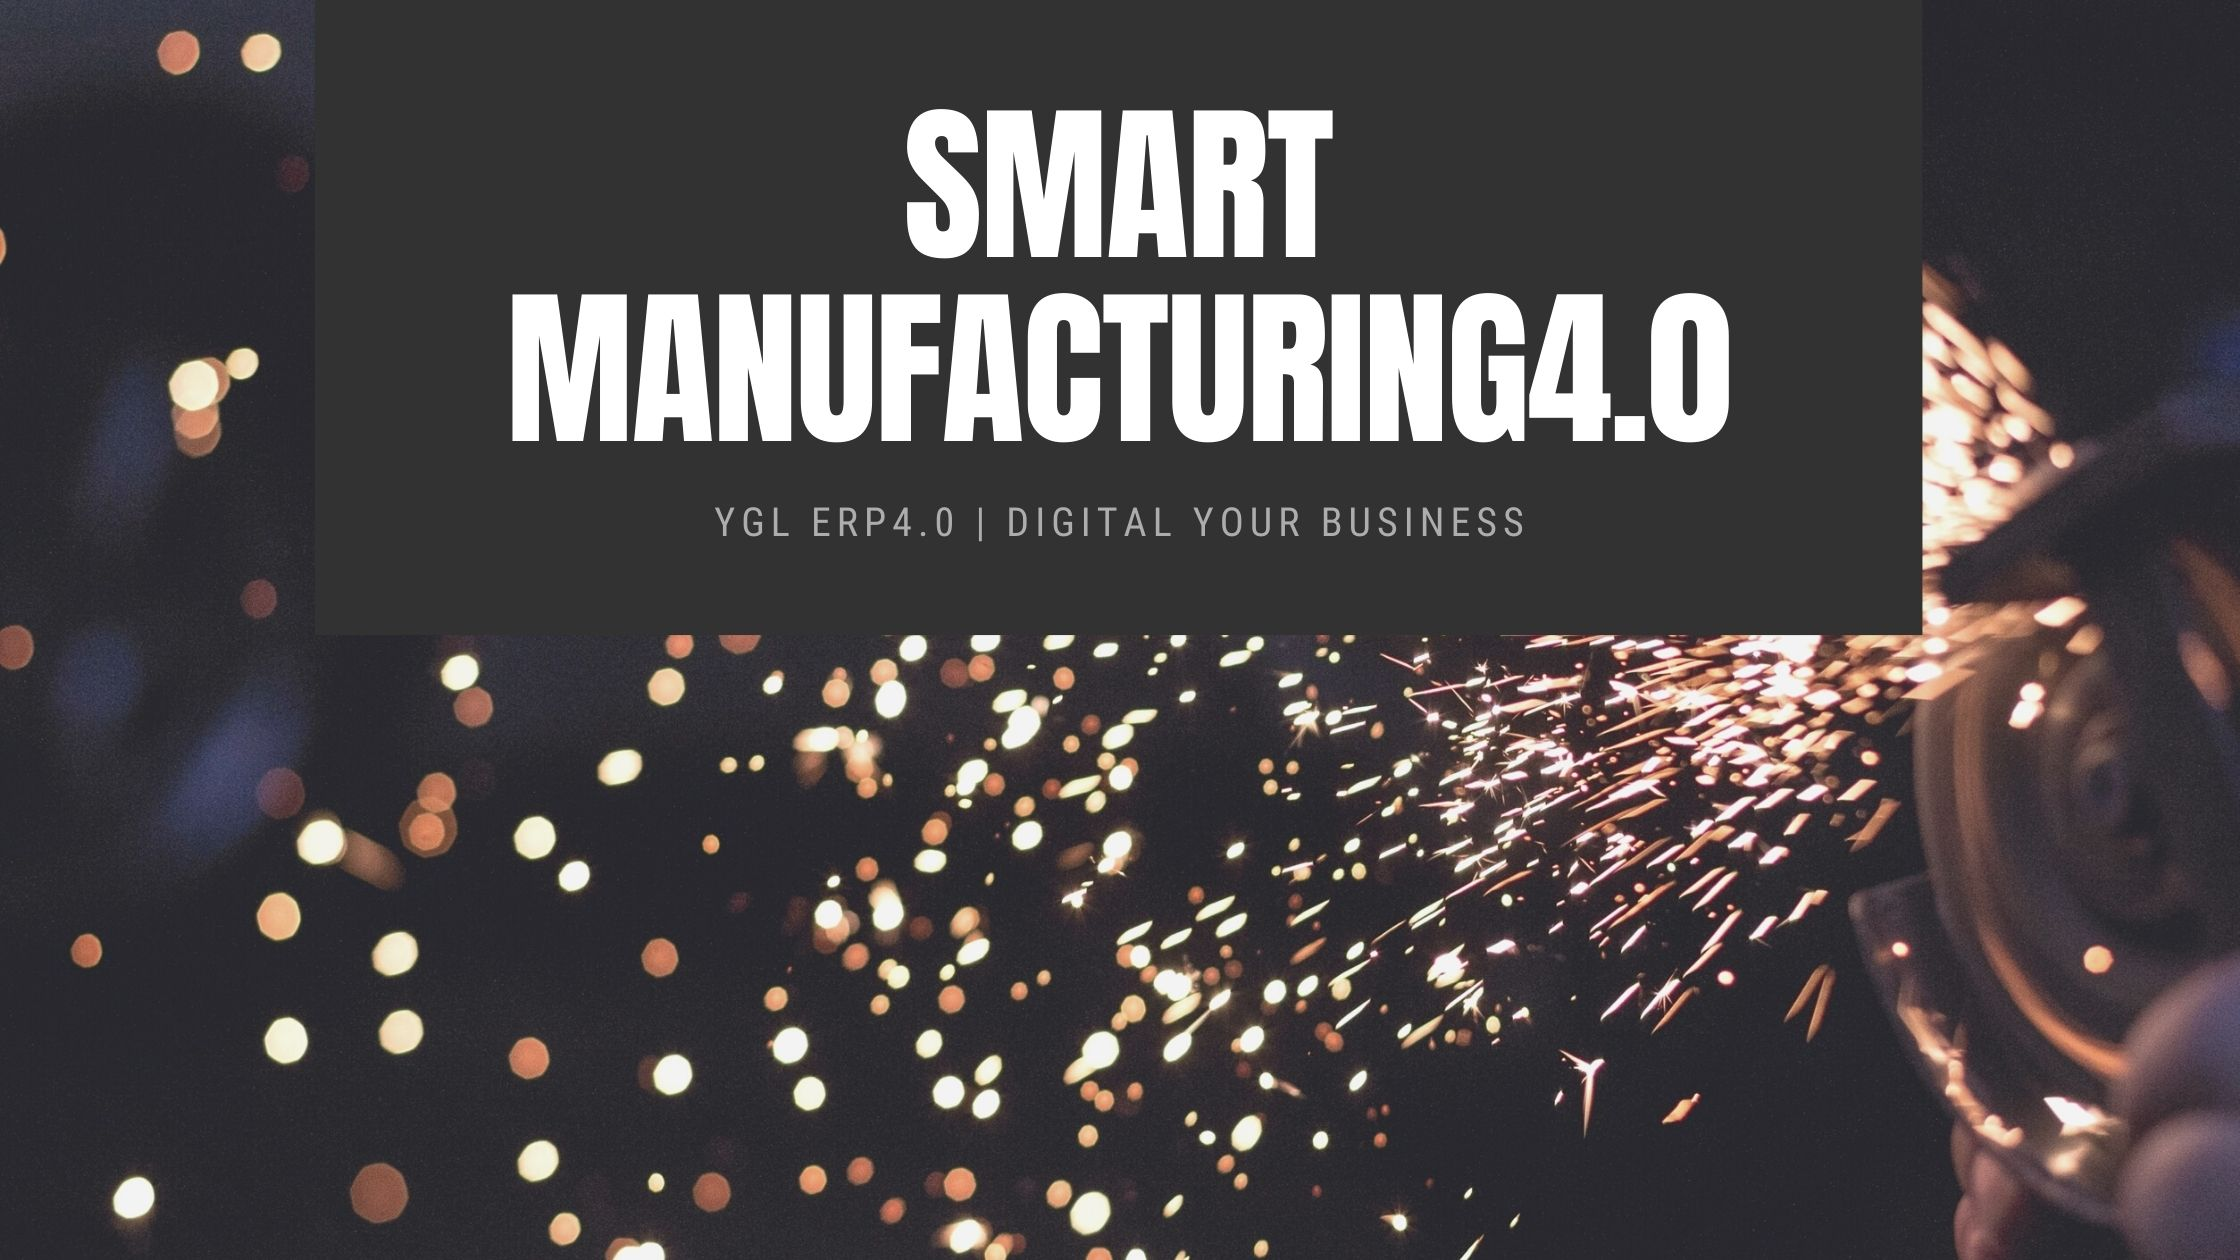 Smart Manufacturing4.0 | YGL ERP4.0 digital your business